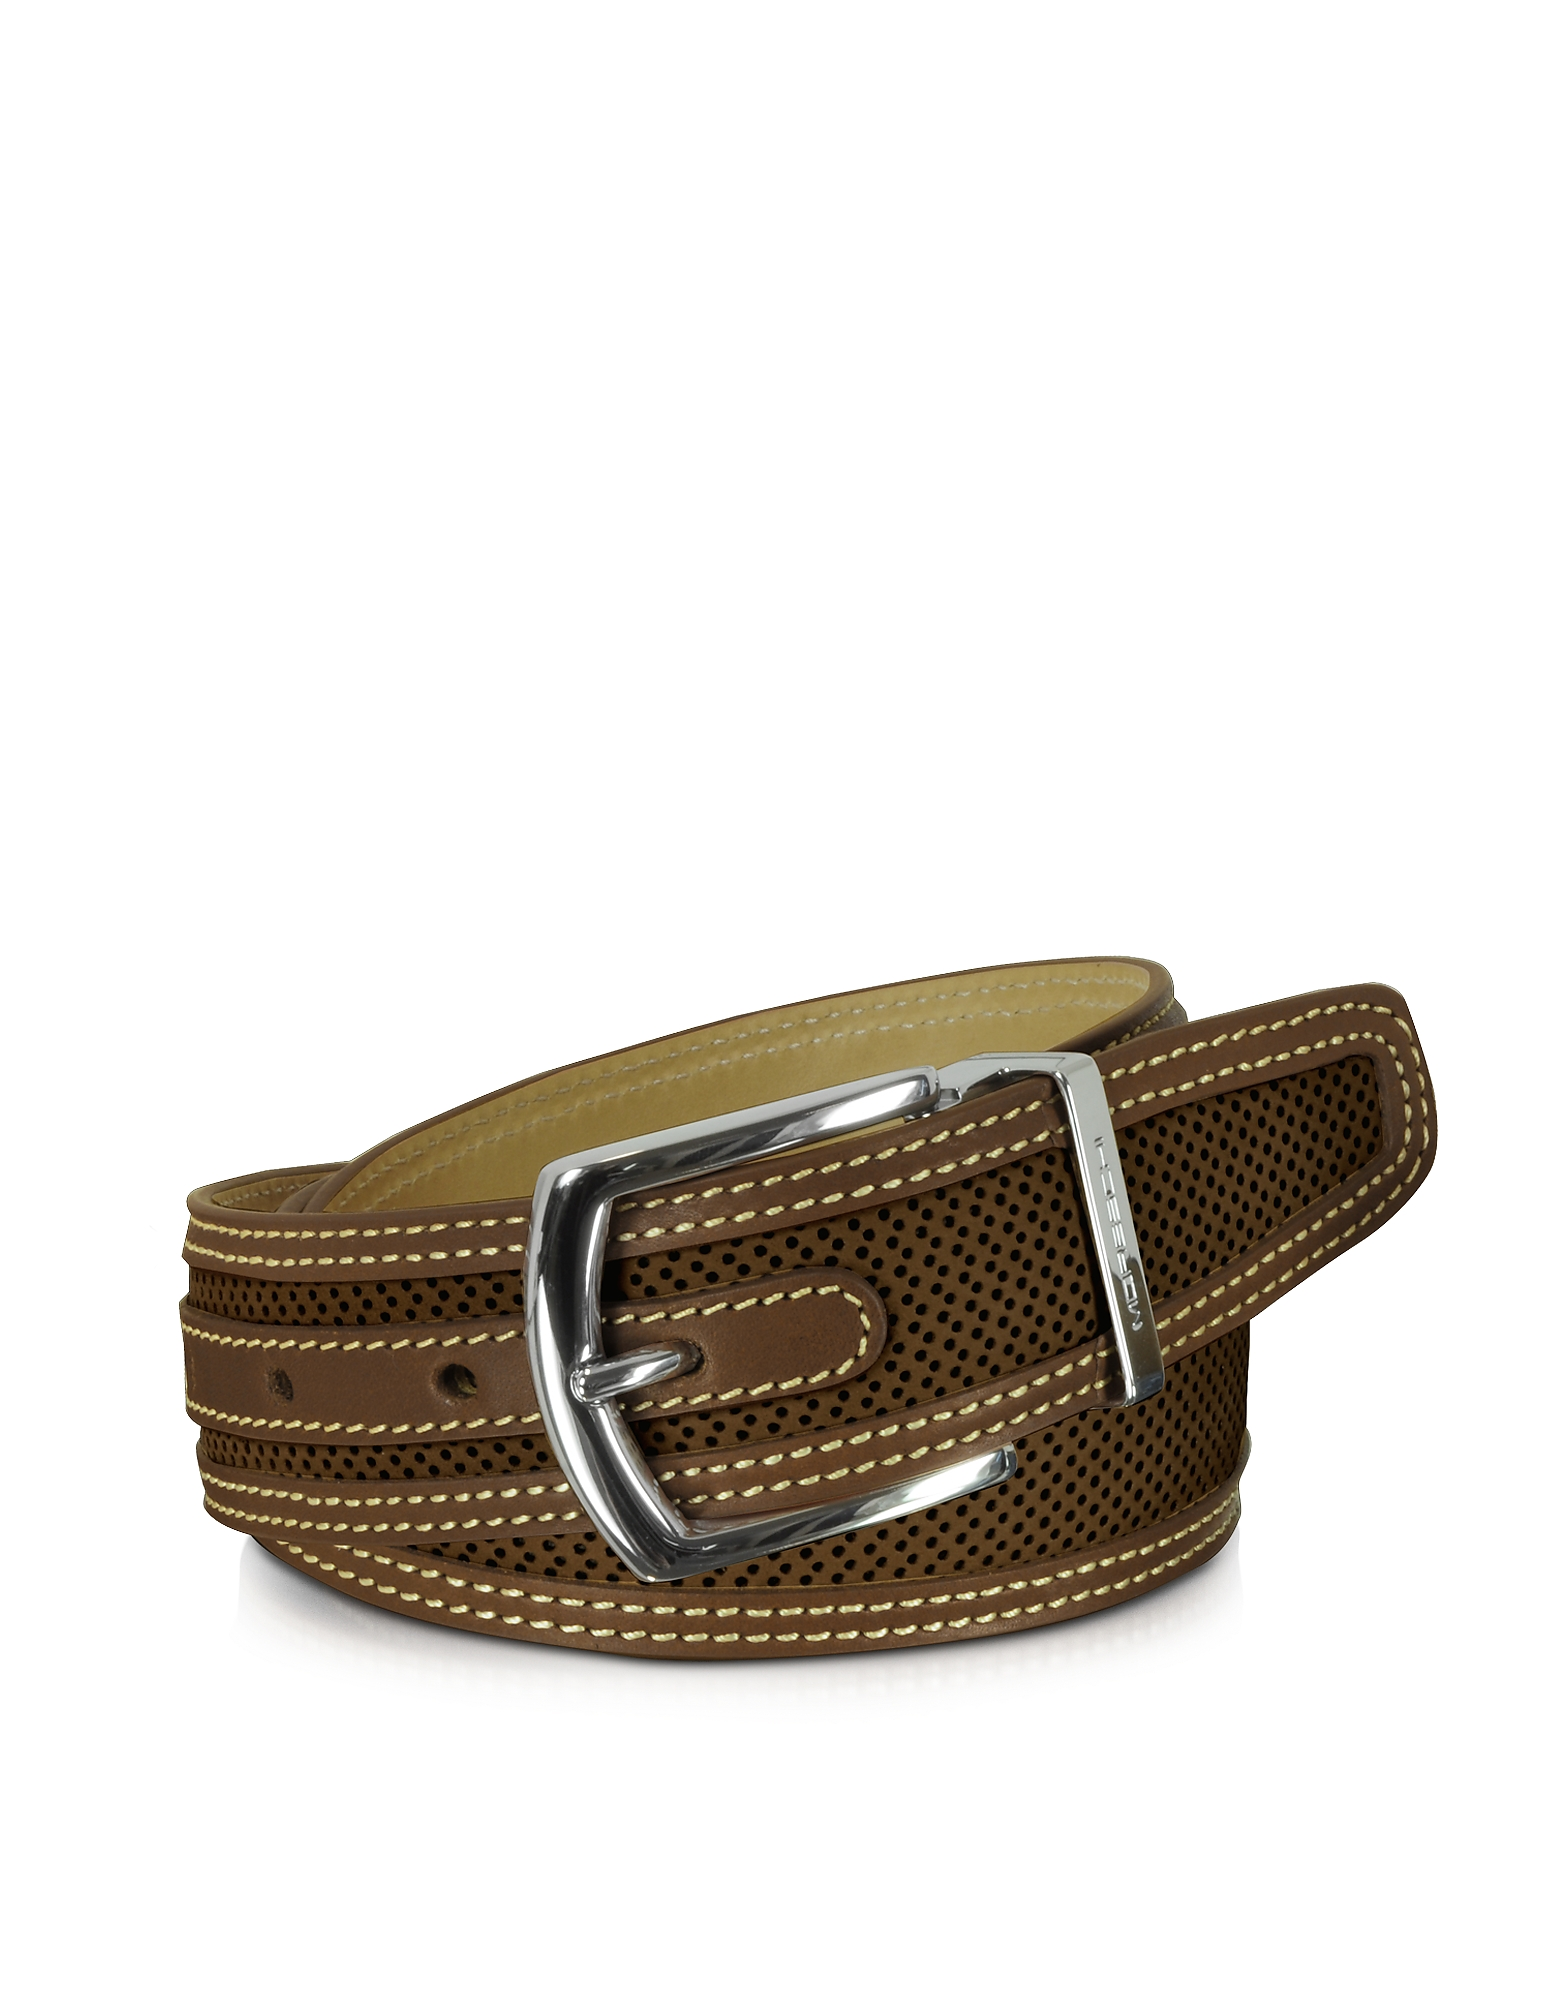 Moreschi Men's Belts, St. Barth Brown Perforated Nubuck and Leather Belt